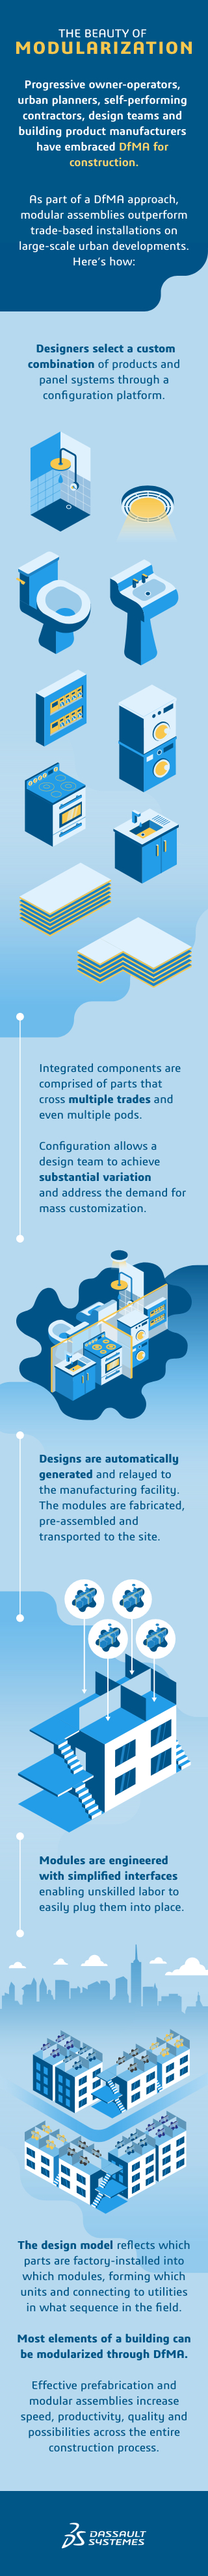 The beauty of modularization Infographic > Mobile version > Dassault Systèmes